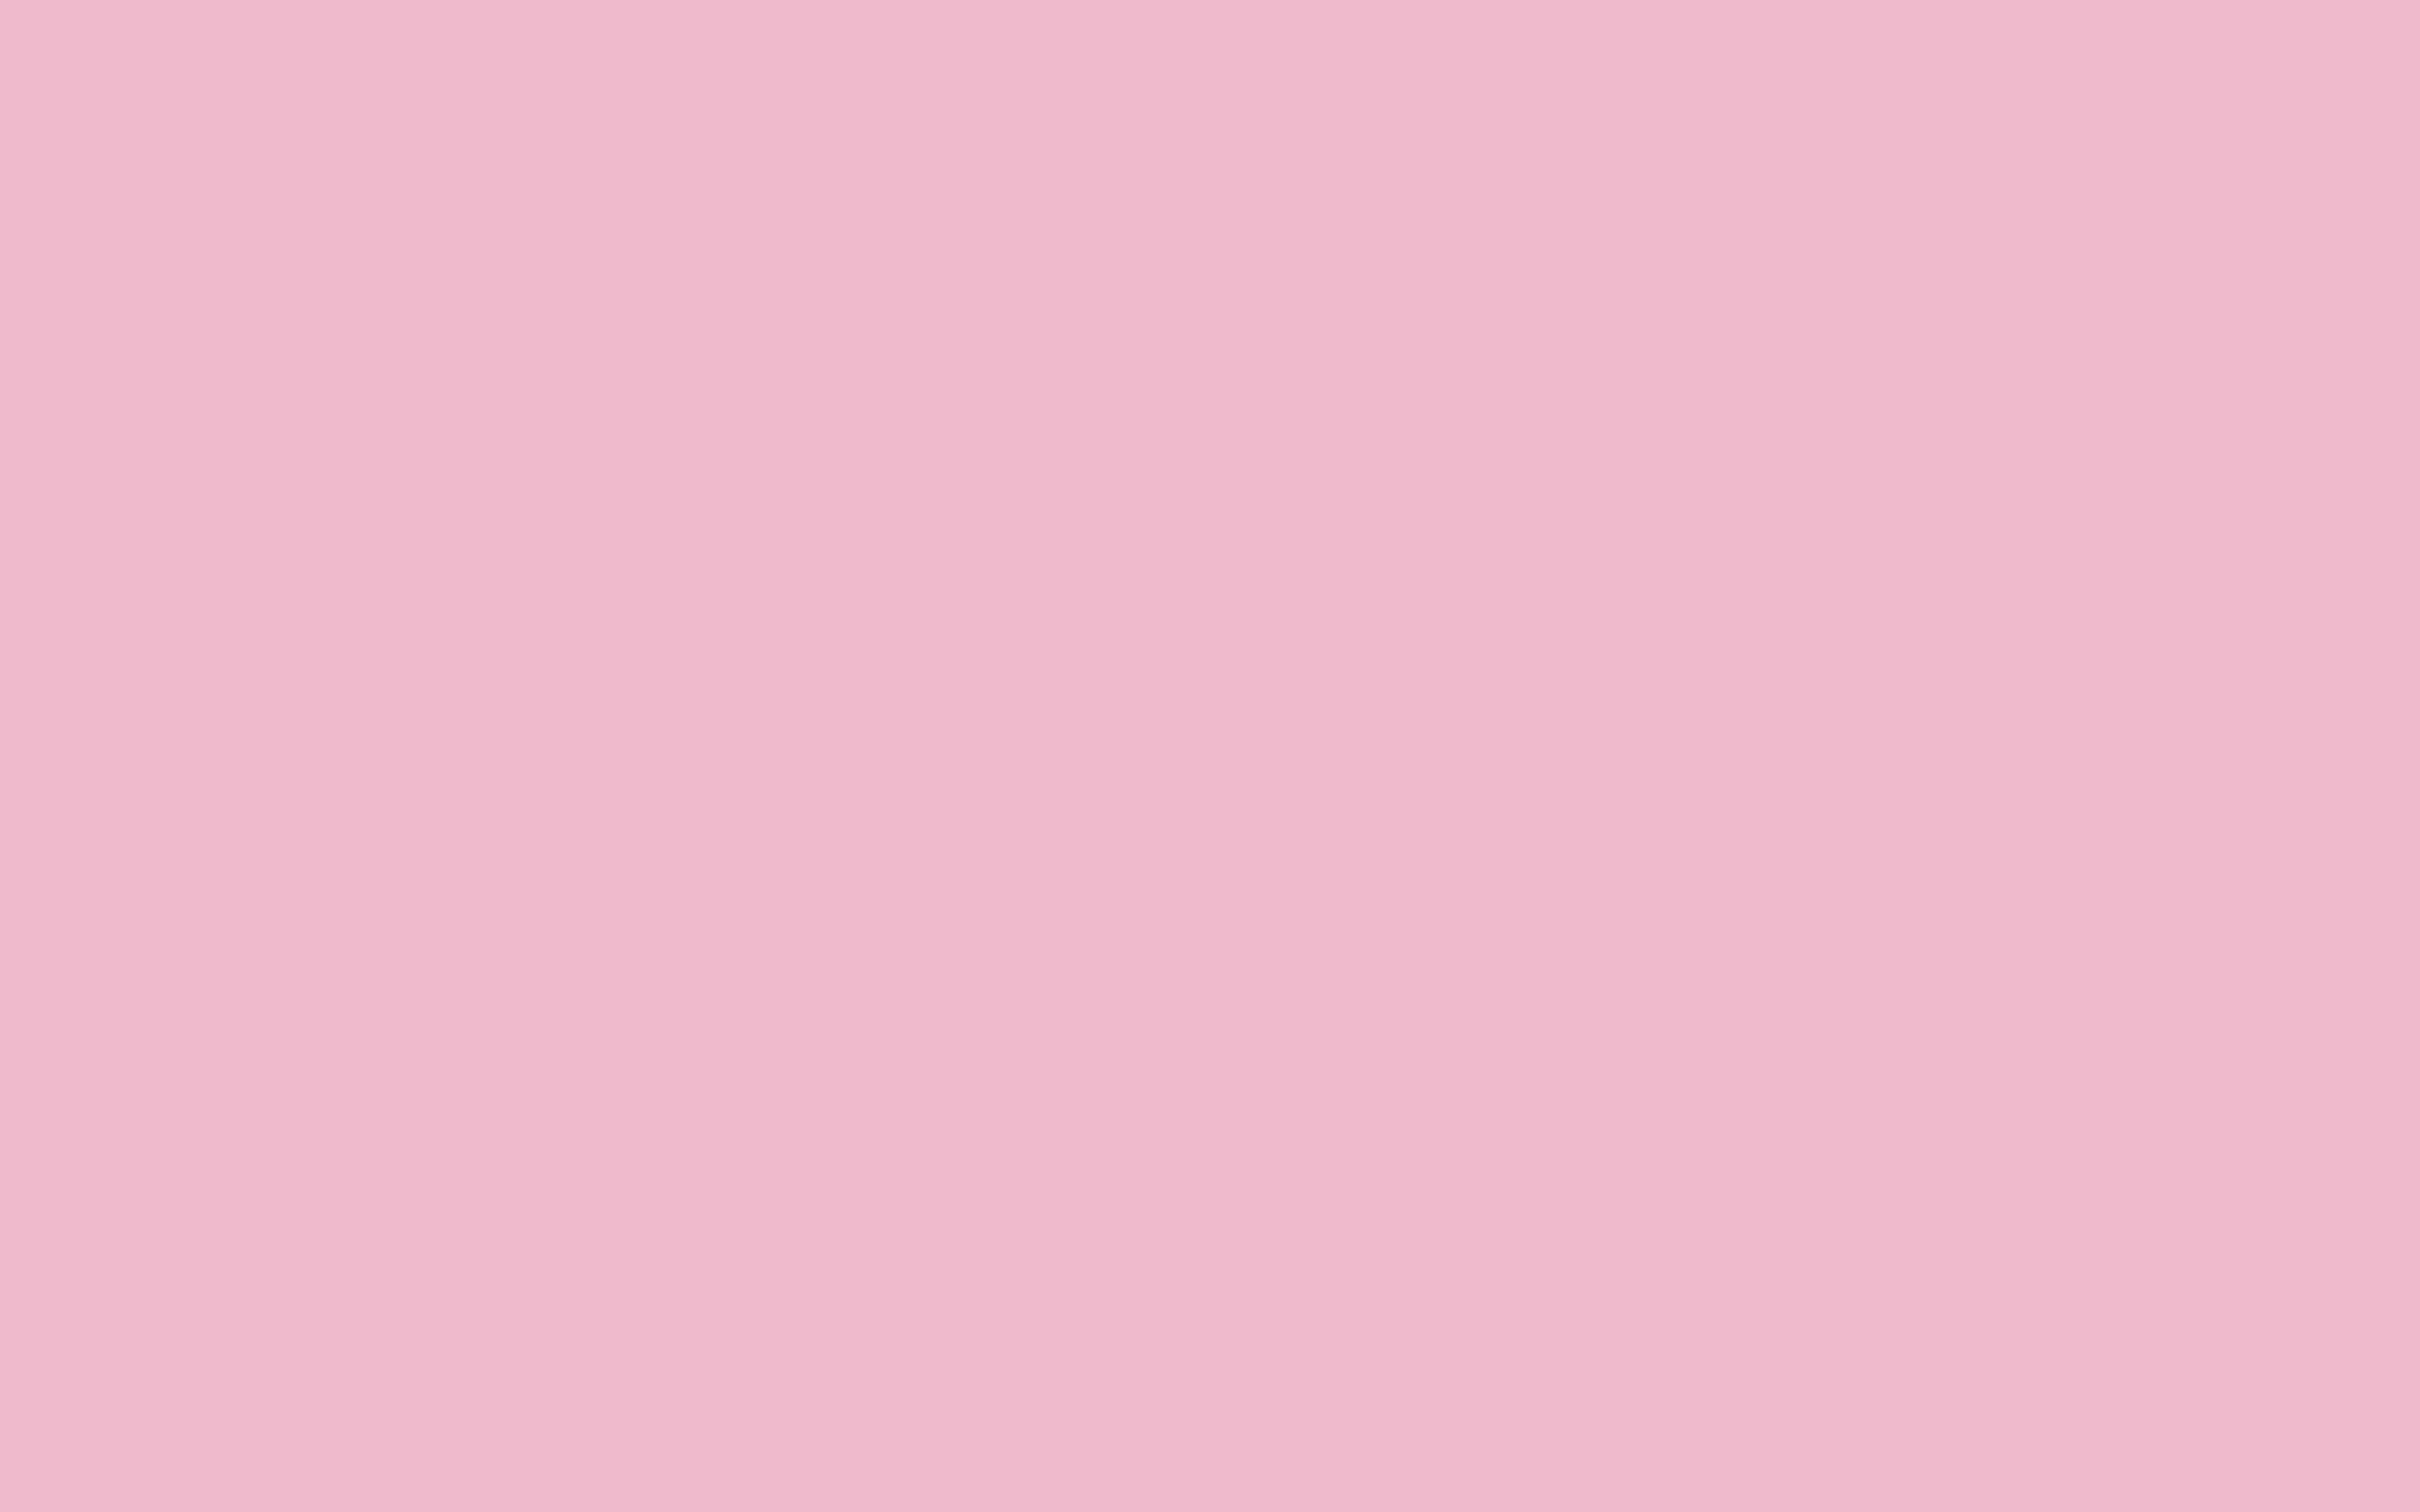 2880x1800 Cameo Pink Solid Color Background